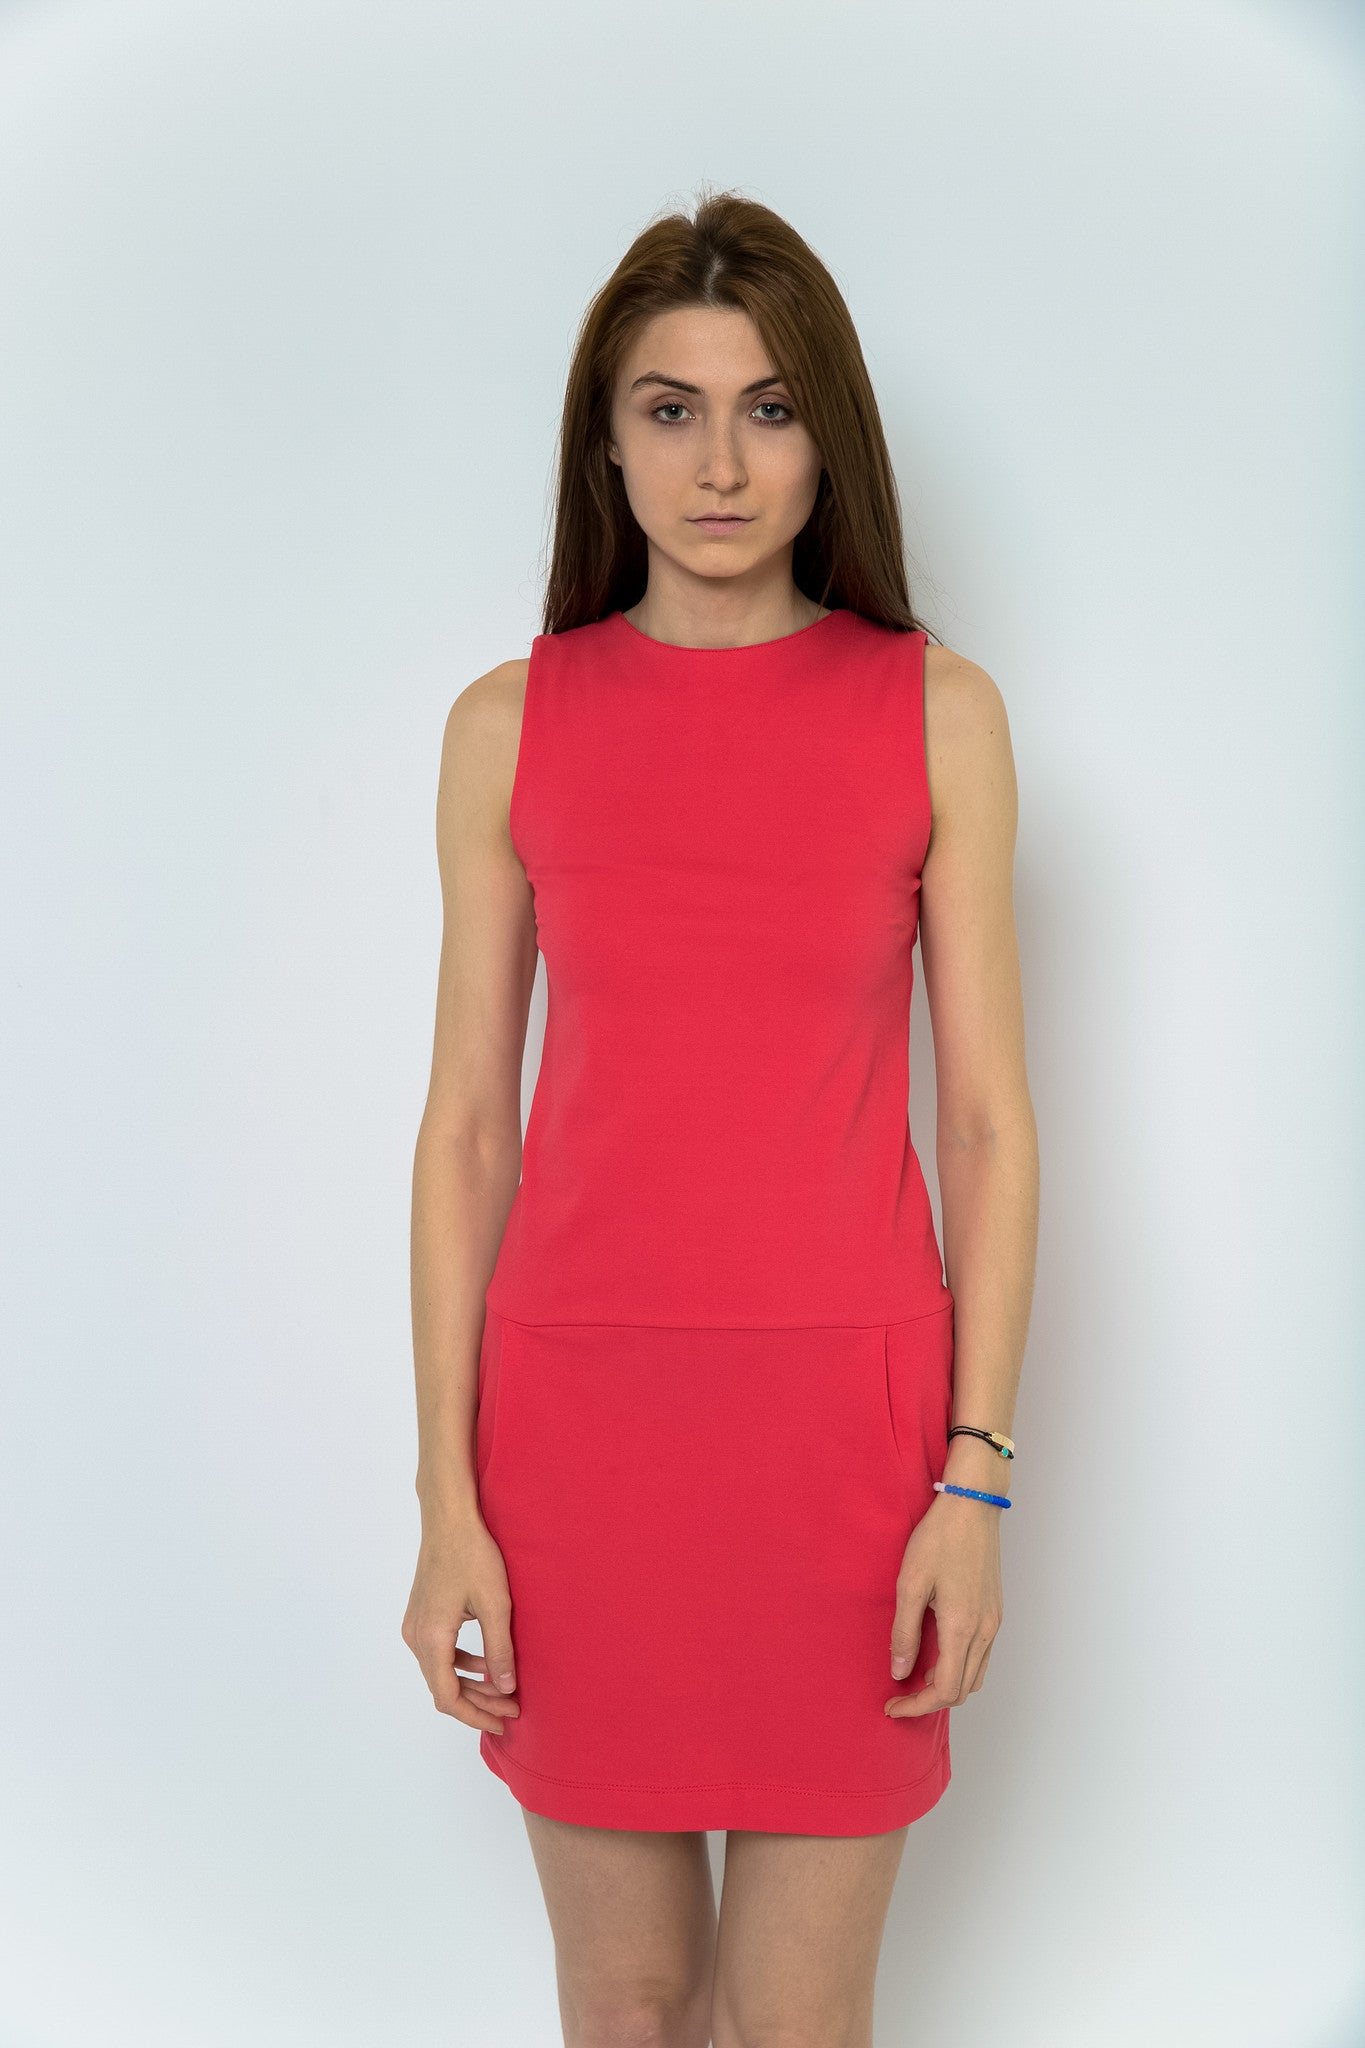 The SoHo Brunch Dress - Sunrose